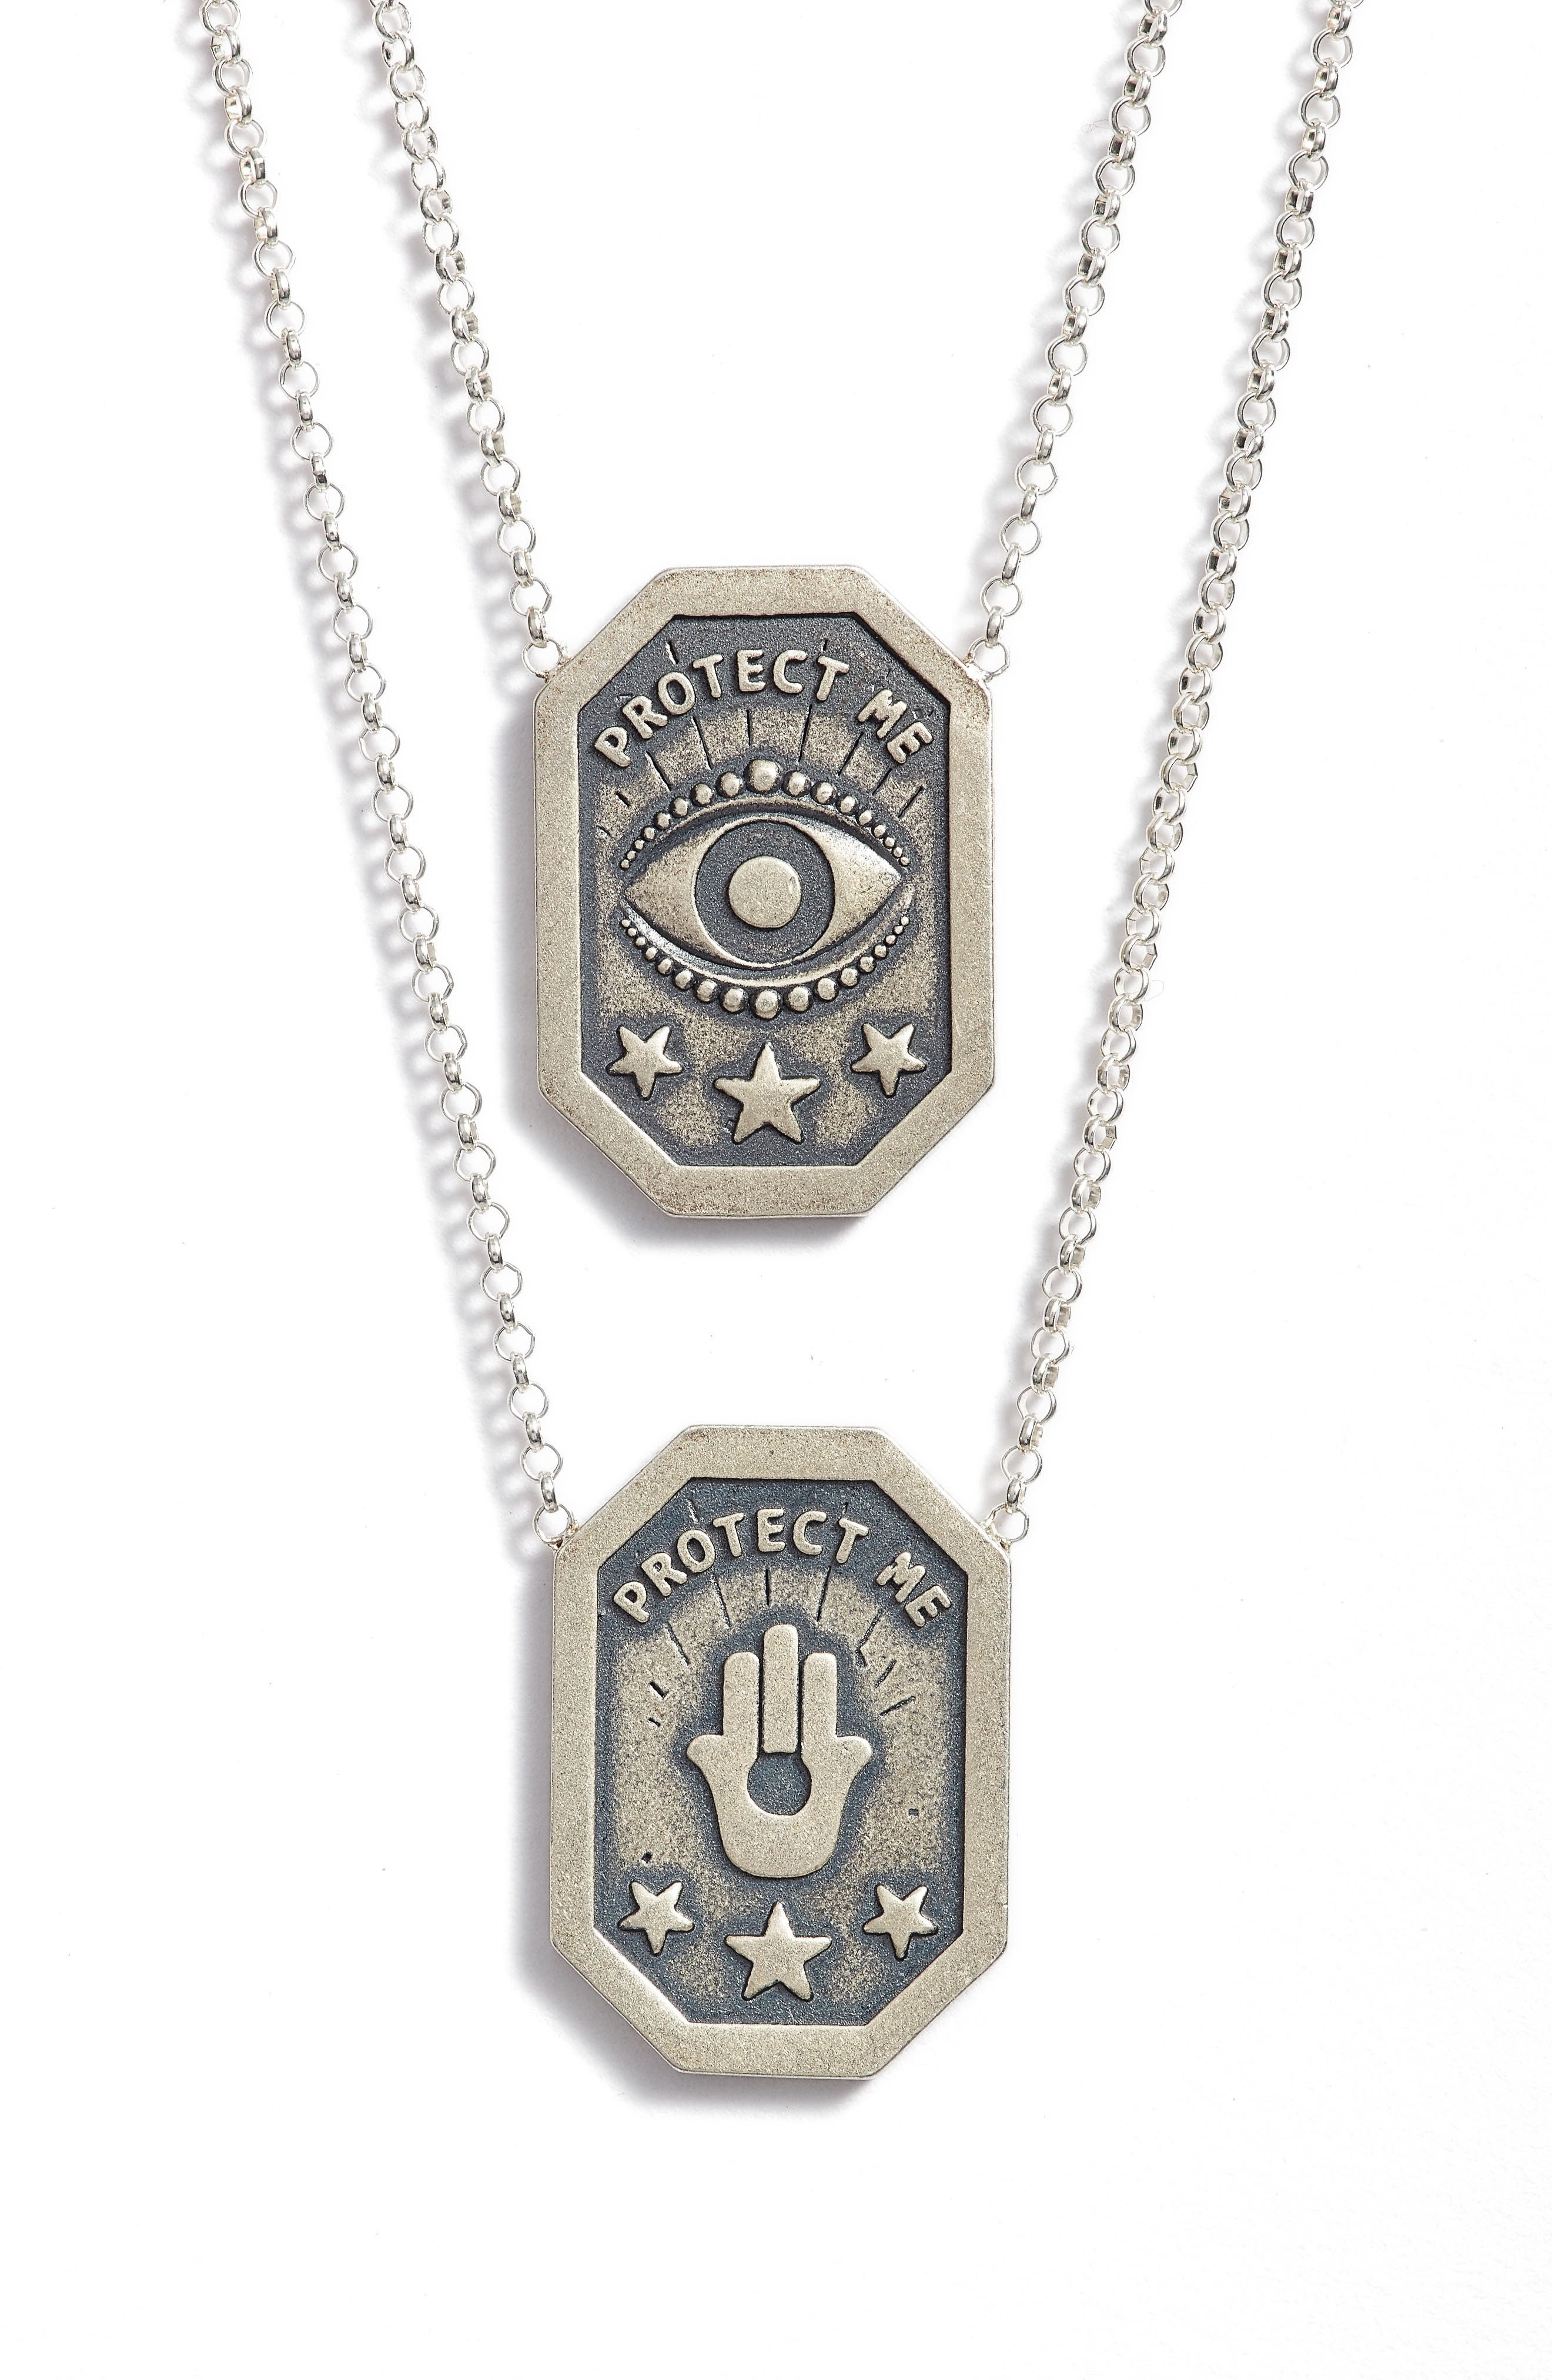 Dogeared Necklaces & Charms